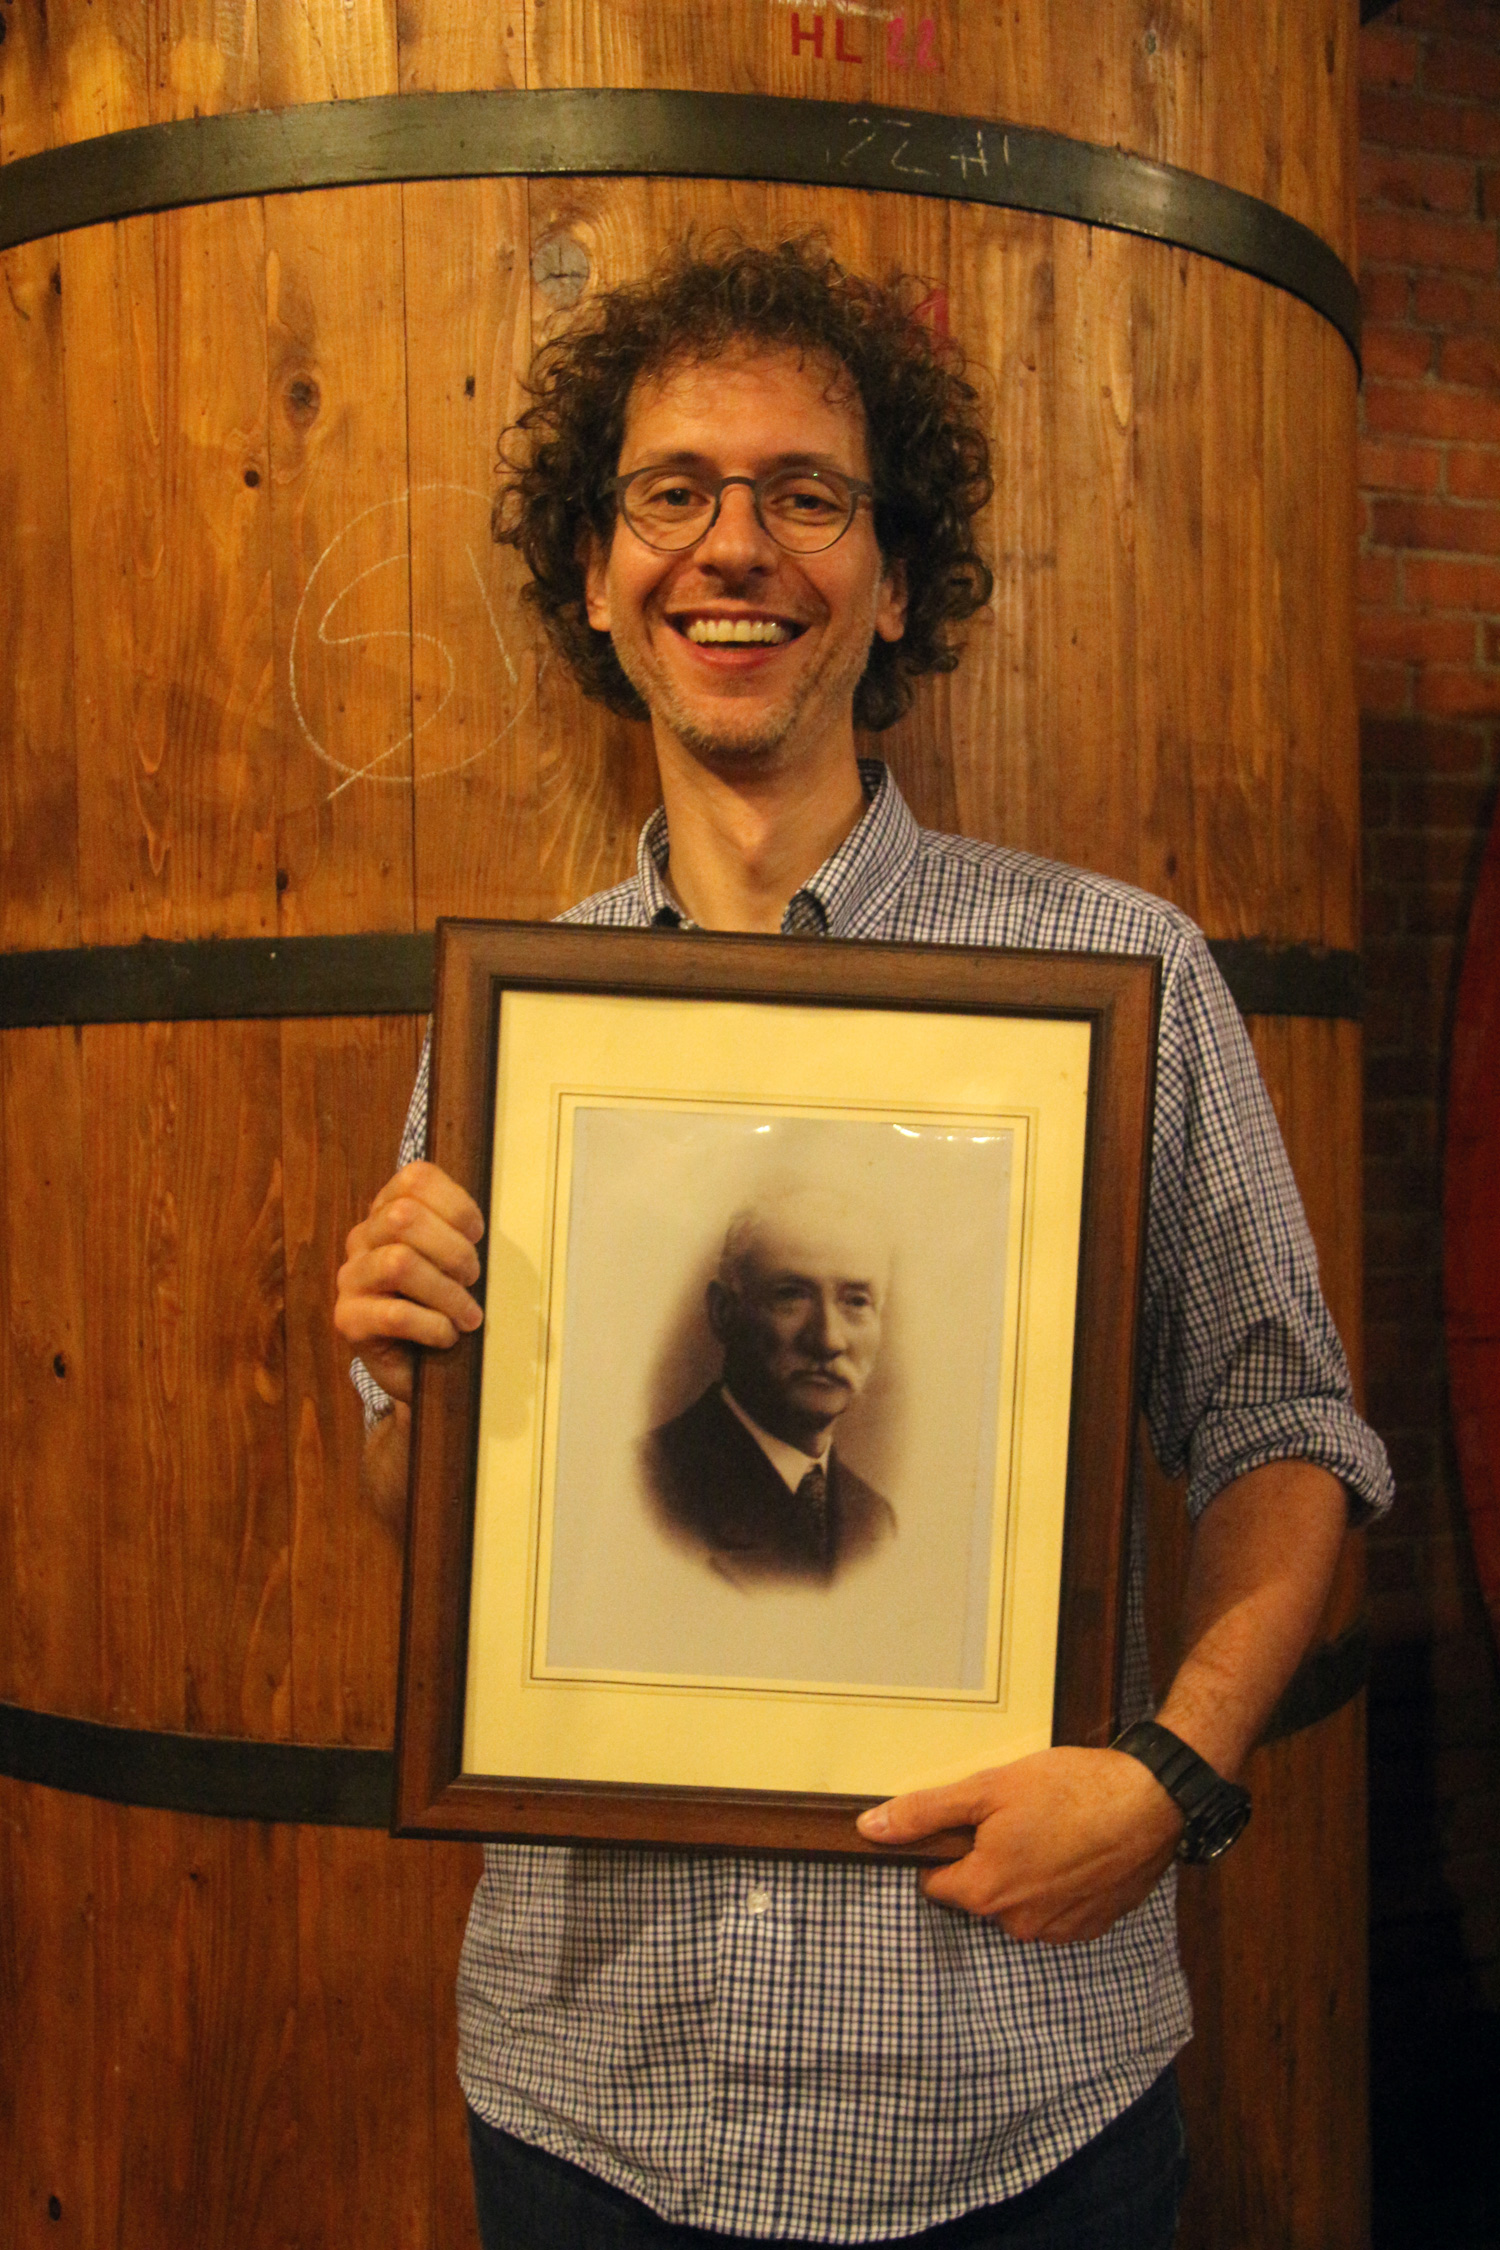 Augusto Cappellano with a portrait of his great-uncle Guiseppe